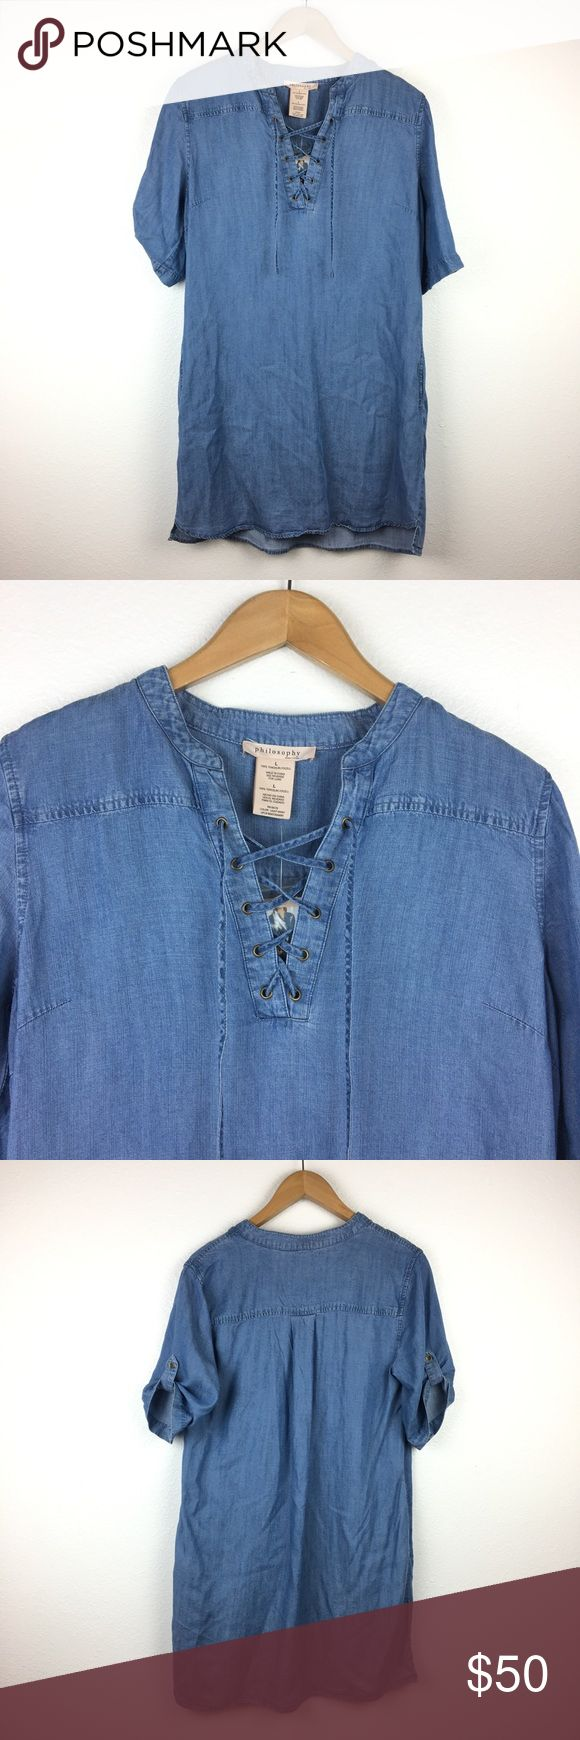 NWT Philosophy Tencel Denim Lace Up Shirt Dress Soft tencel fabric. Chambray denim. Lace up front. Short sleeve with button-tabs. Loose fit shift dress. Brand new, with tags attached. Philosophy Dresses